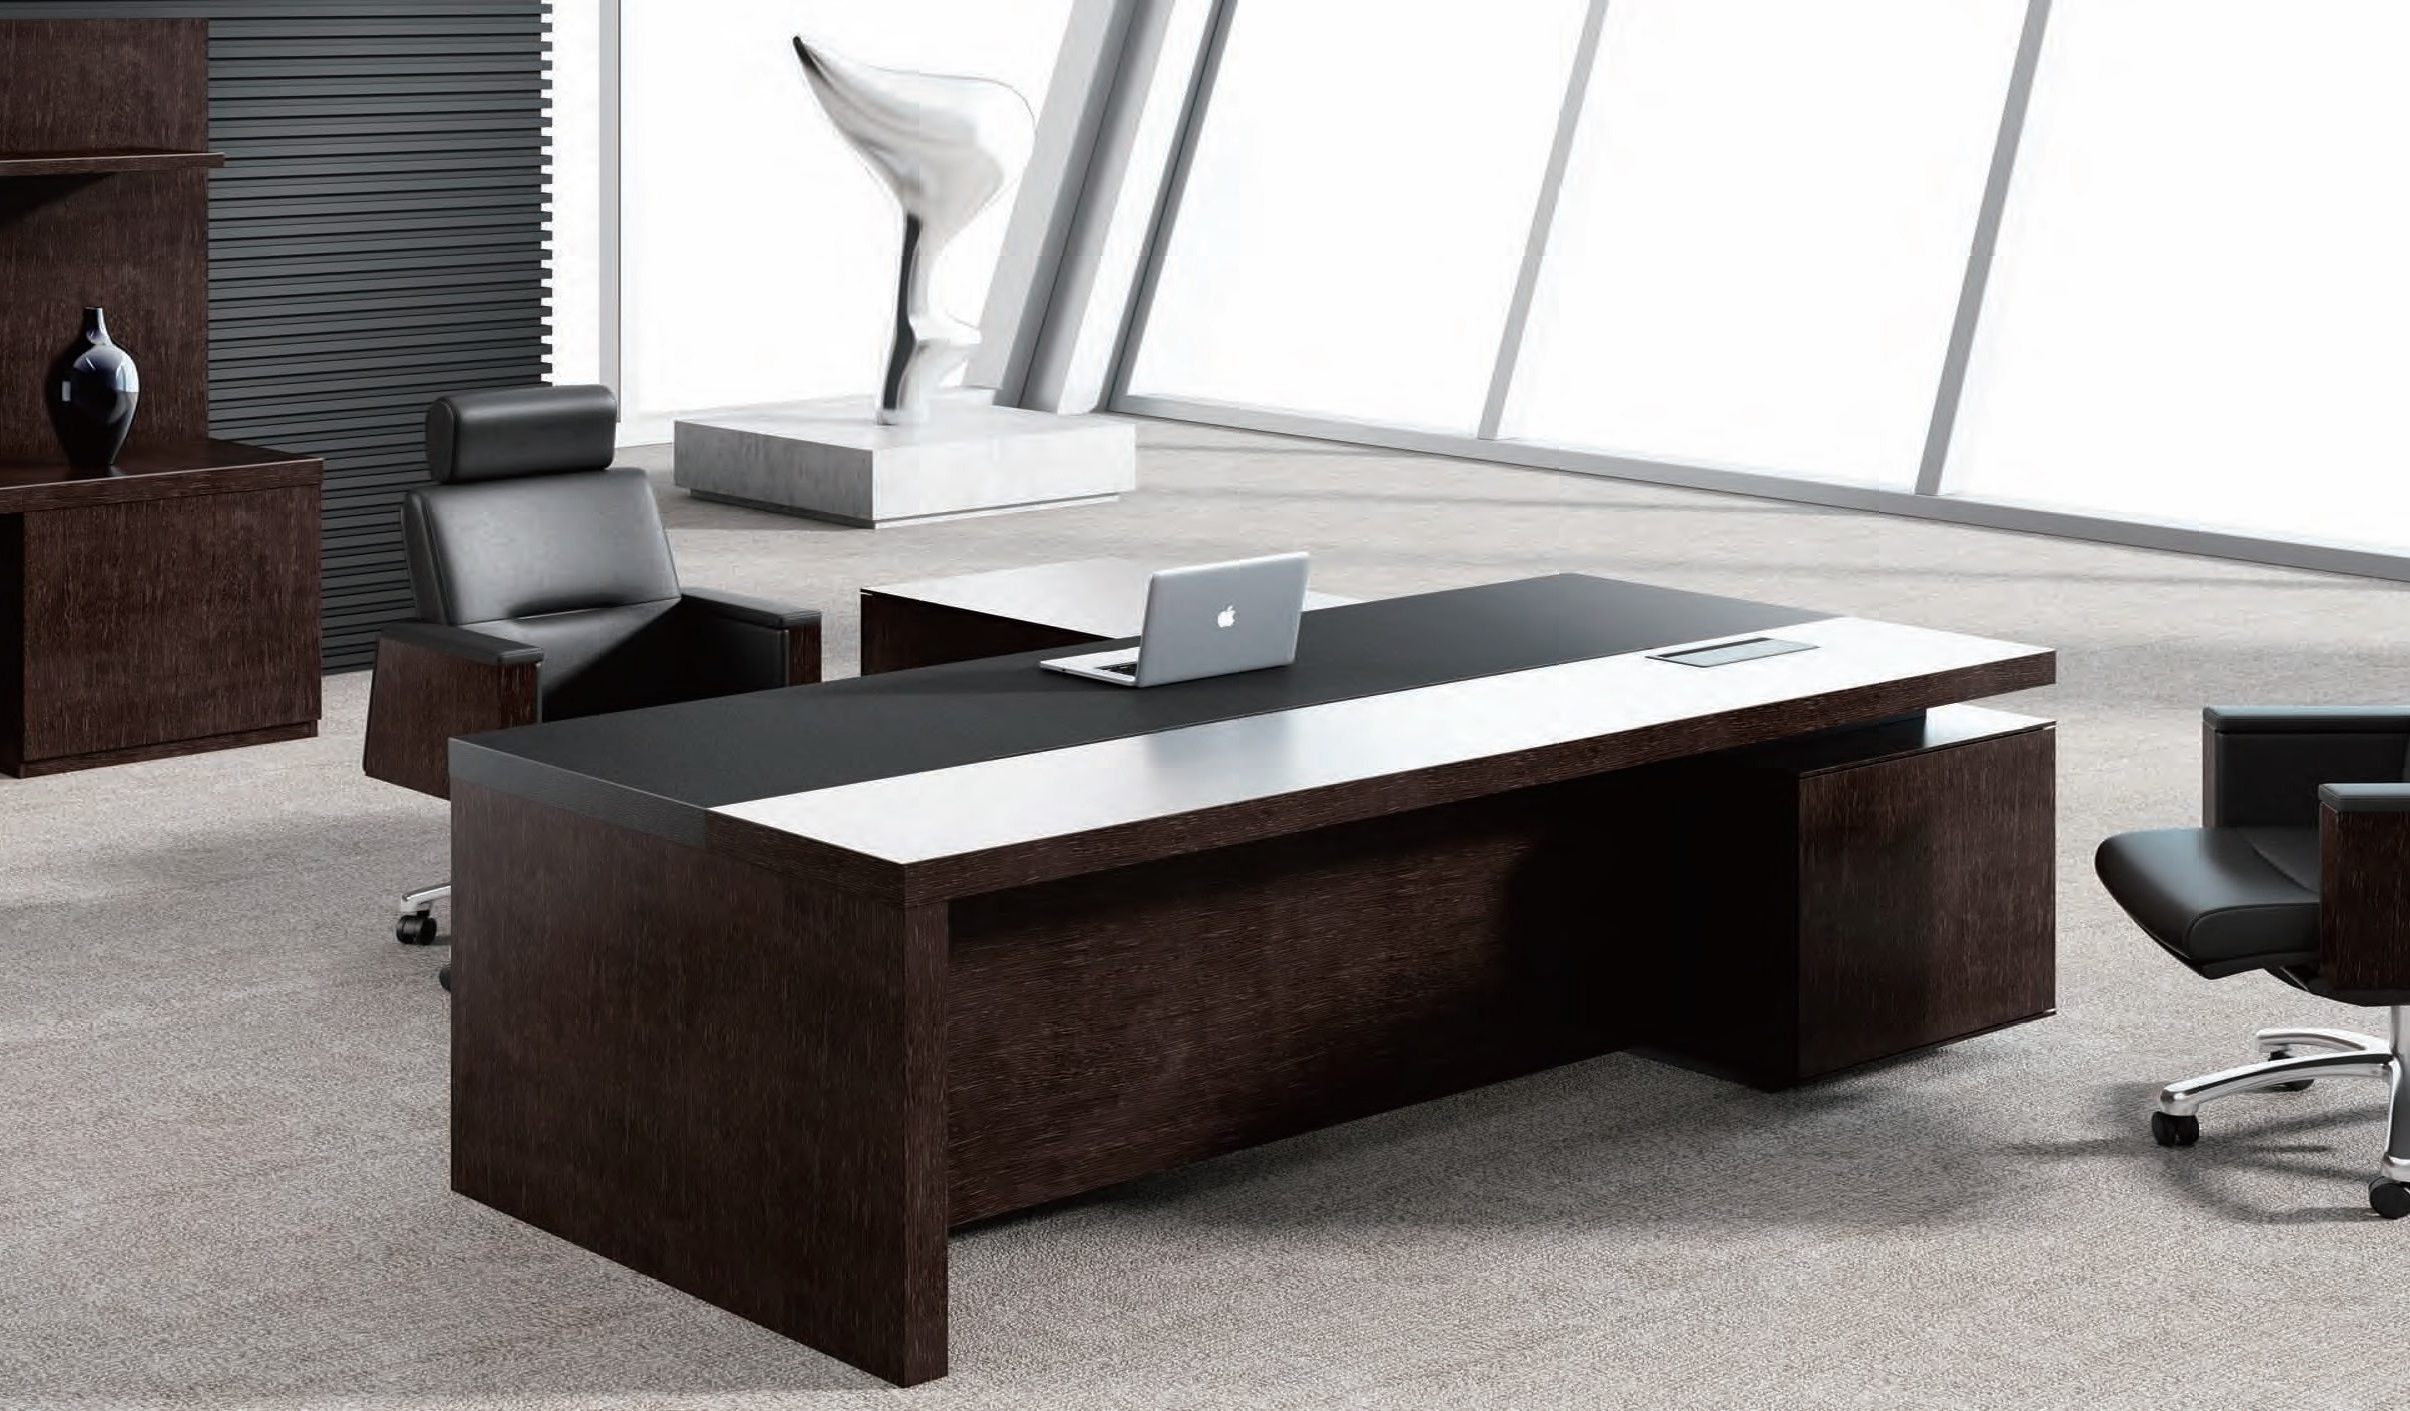 office table design. 5 EL-82 Office Table Design O